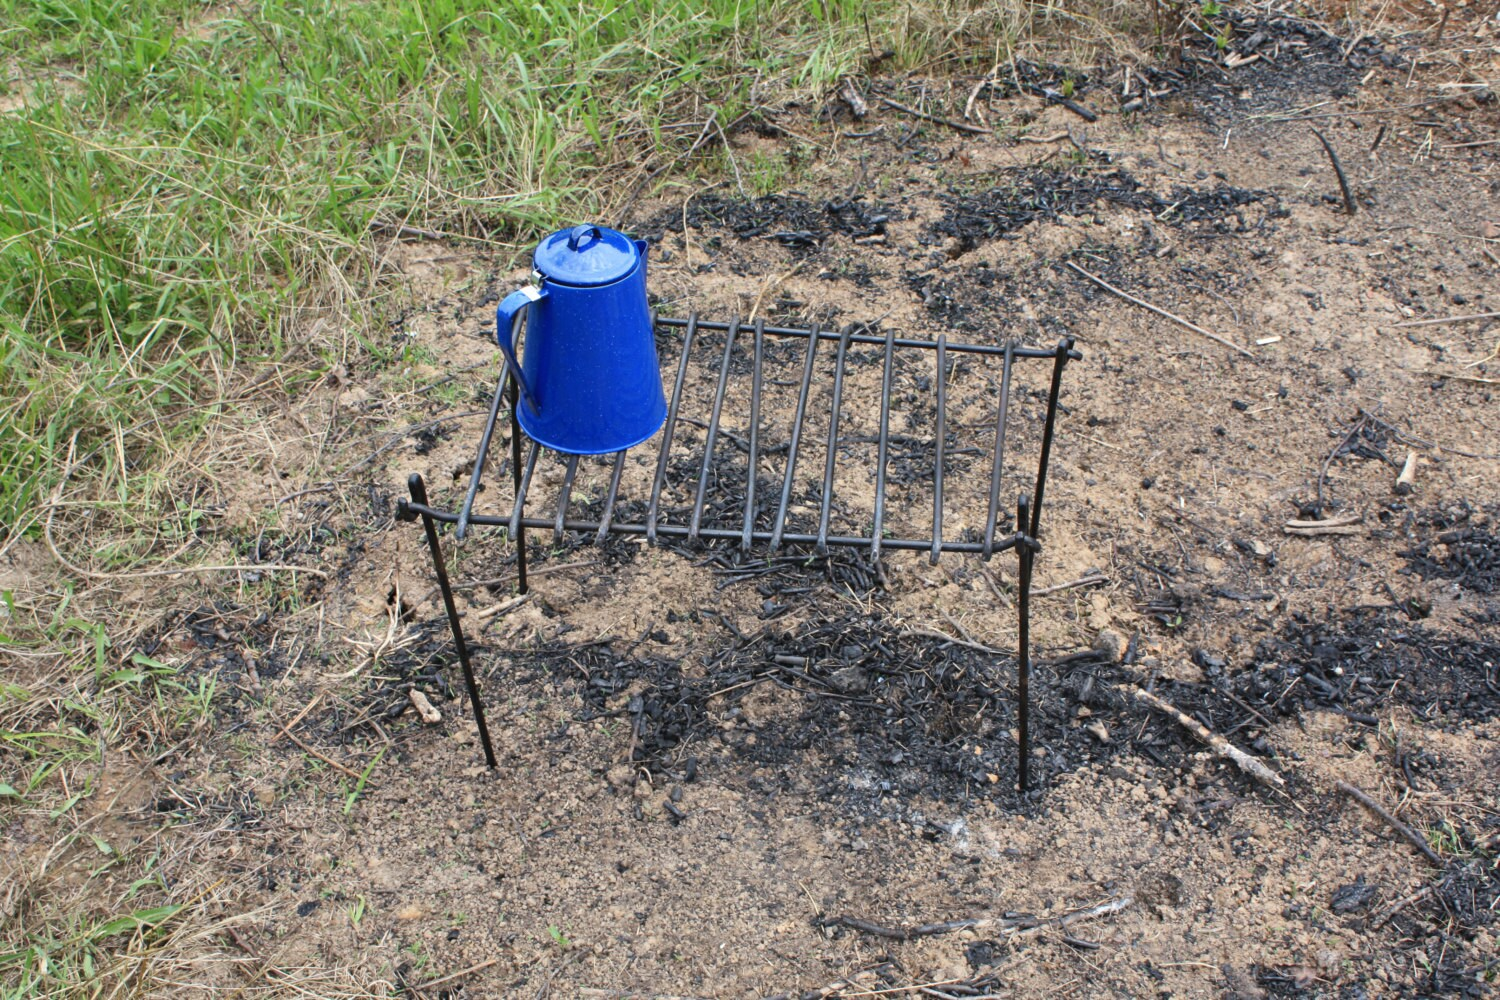 Blacksmith Forged Campfire Cooking Grate For Camping Or Etsy